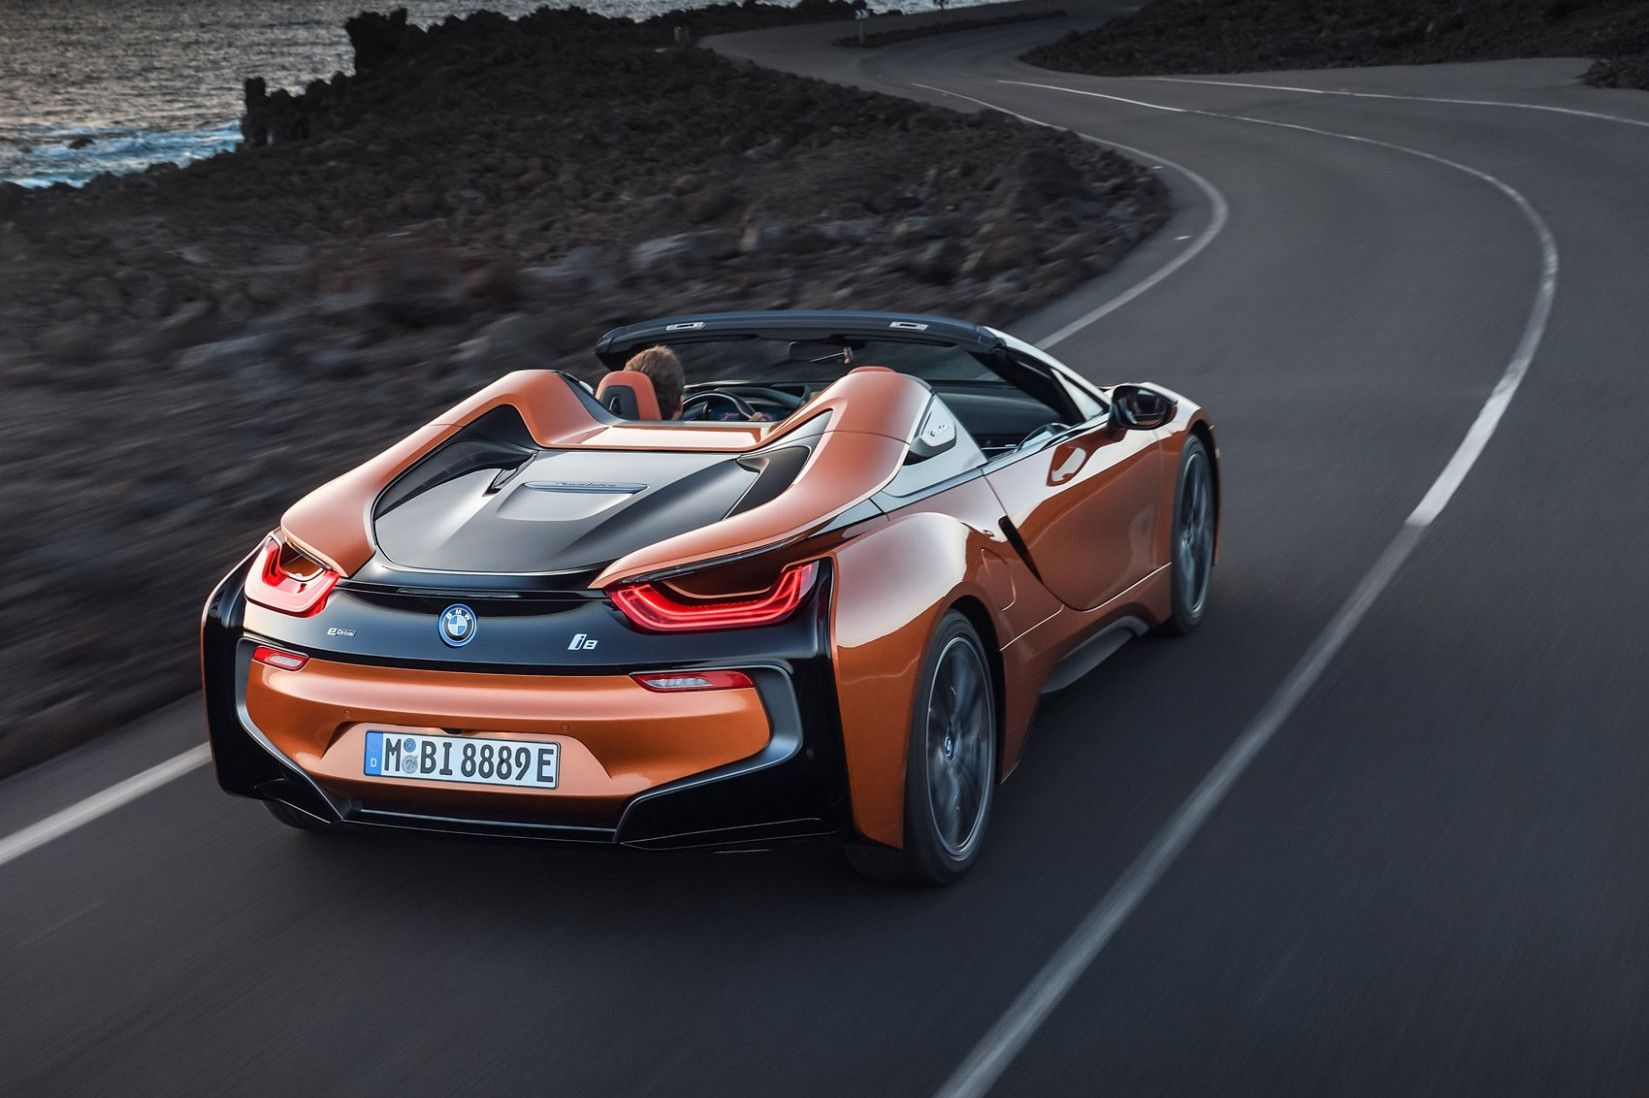 9 Ways Bmw I9 Roadster Price Can Improve Your Business Bmw I9 Roadster Price Https Ift Tt 2aqa6wl Mobil Sport Bugatti Mobil